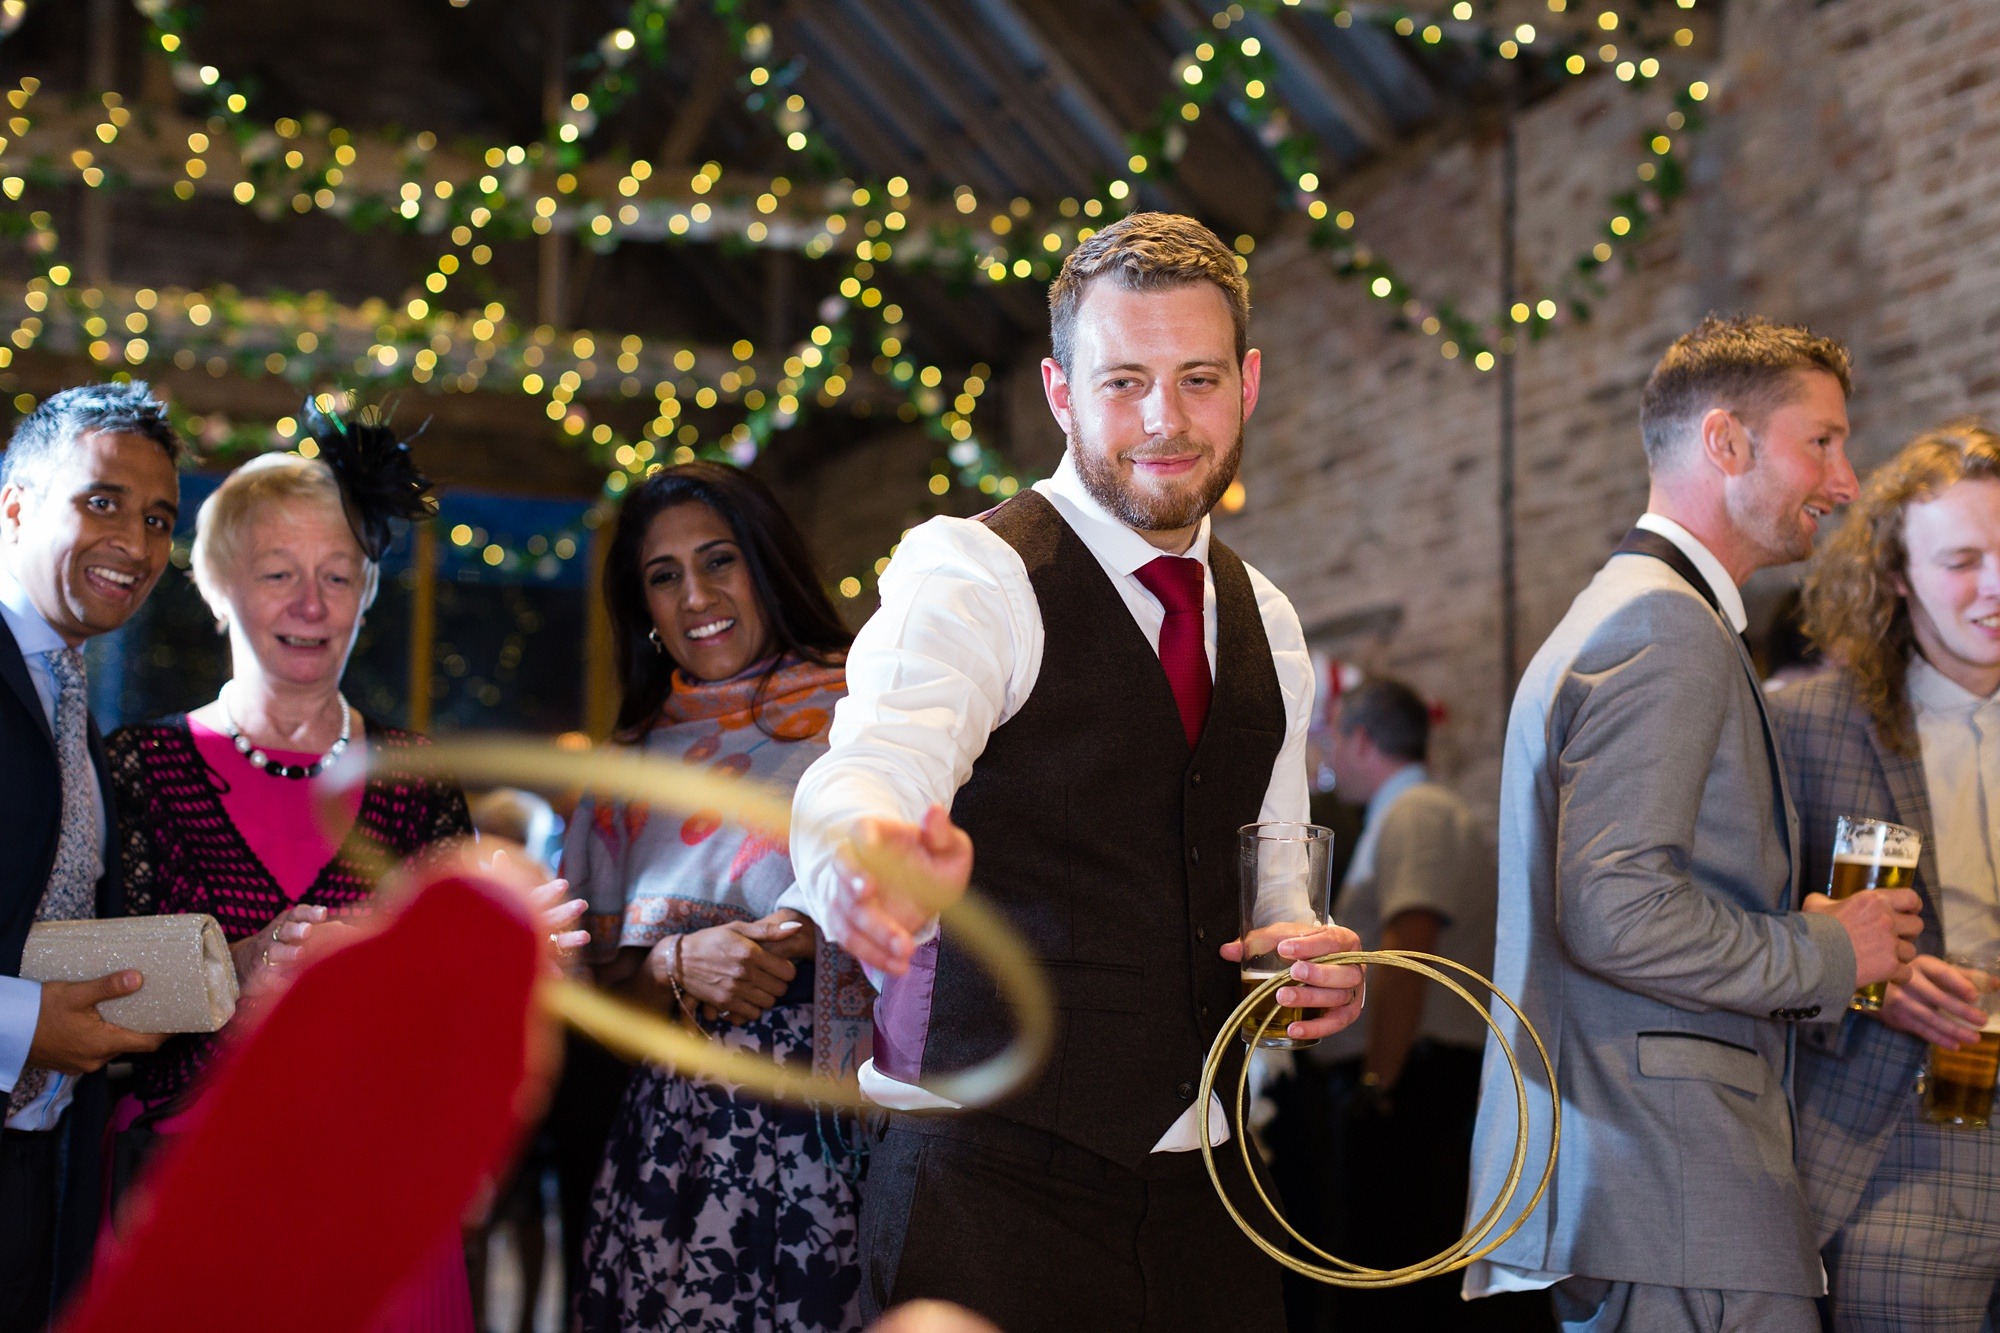 Yorkshire Wedding Photographers Ring toss with groom